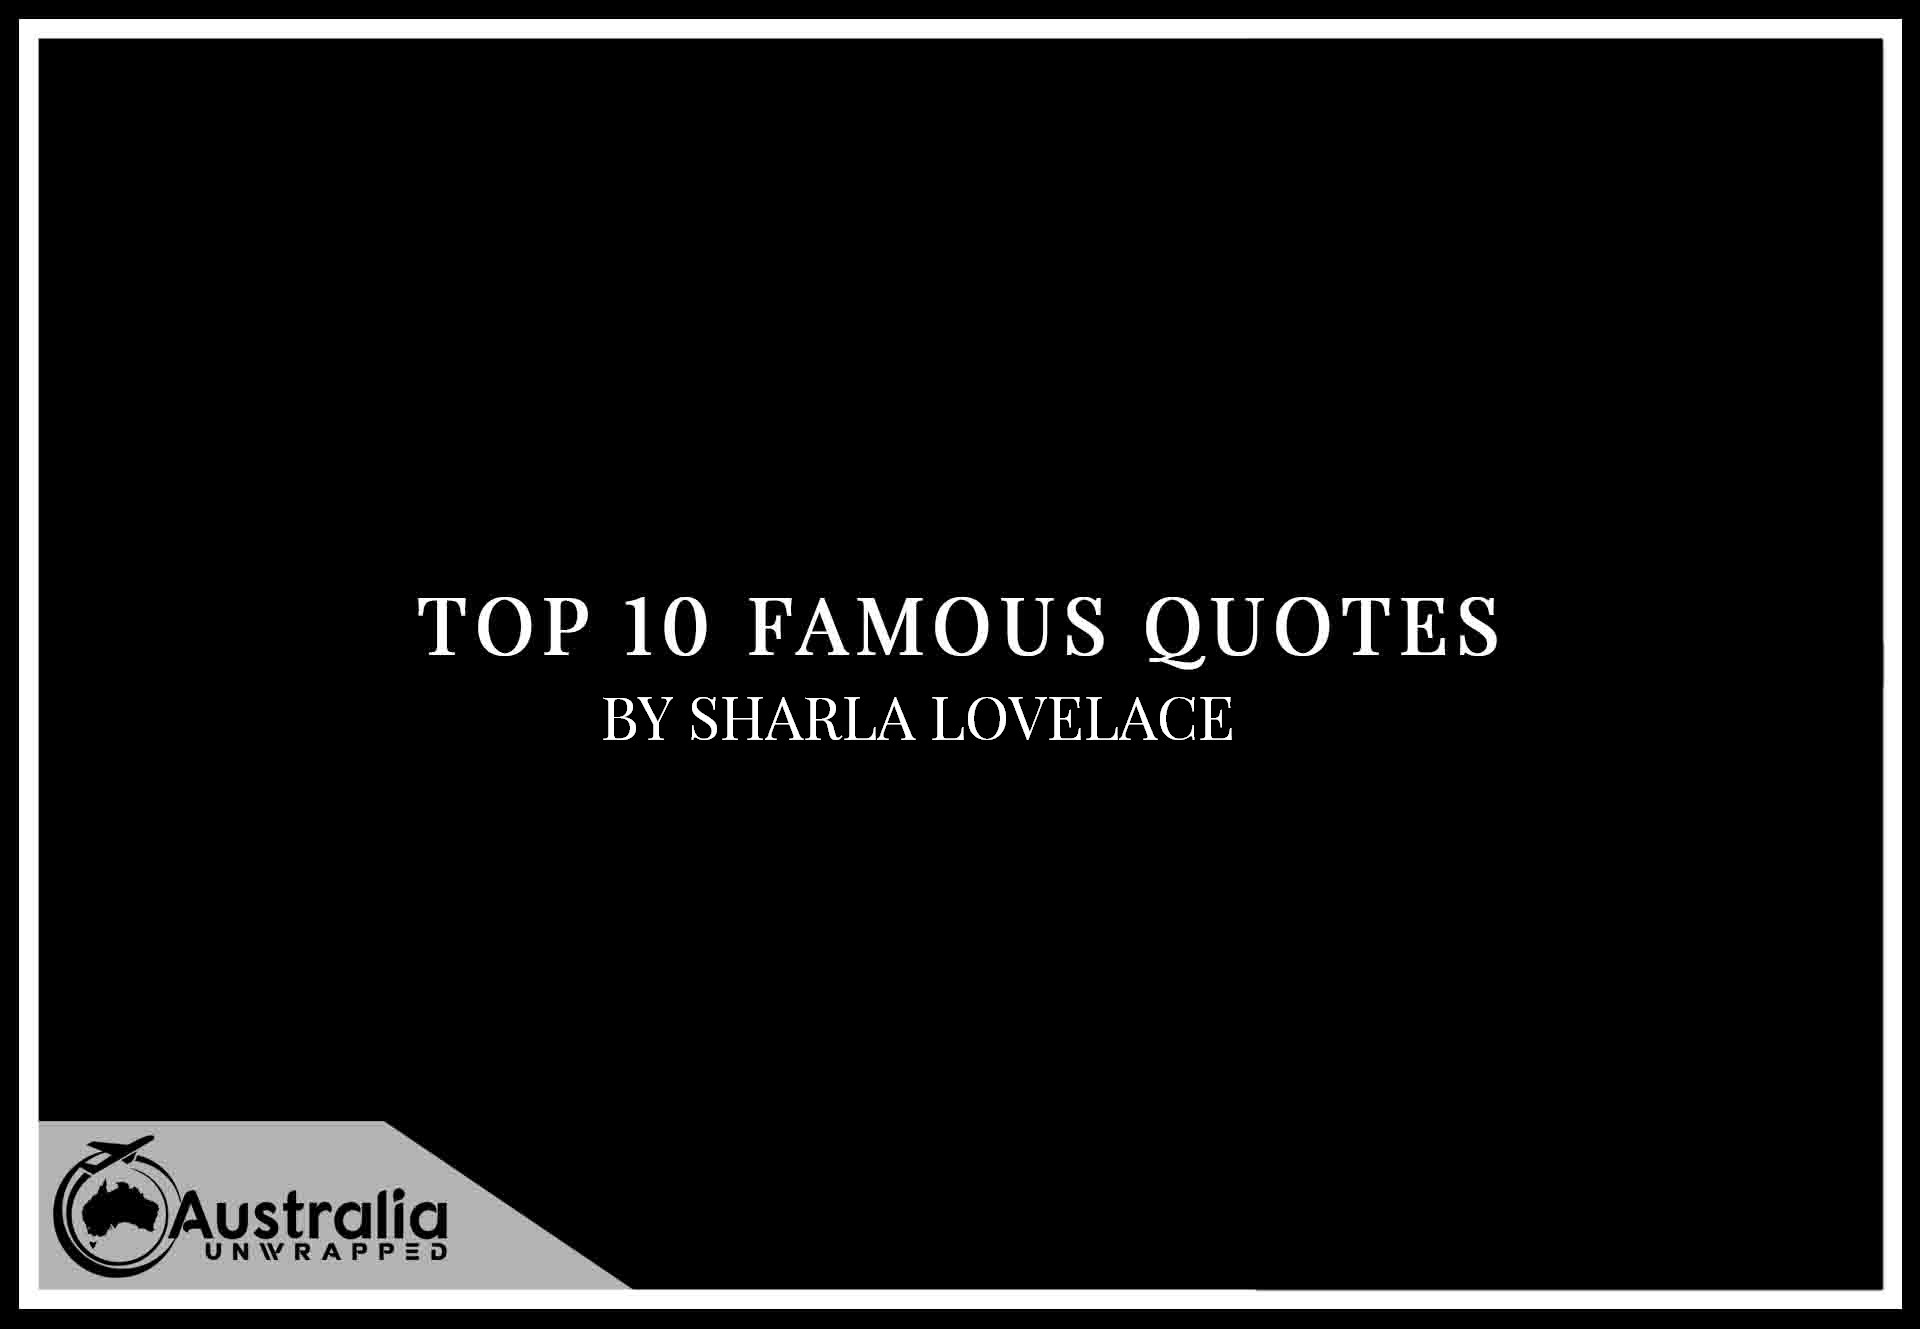 Top 10 Famous Quotes by Author Sharla Lovelace